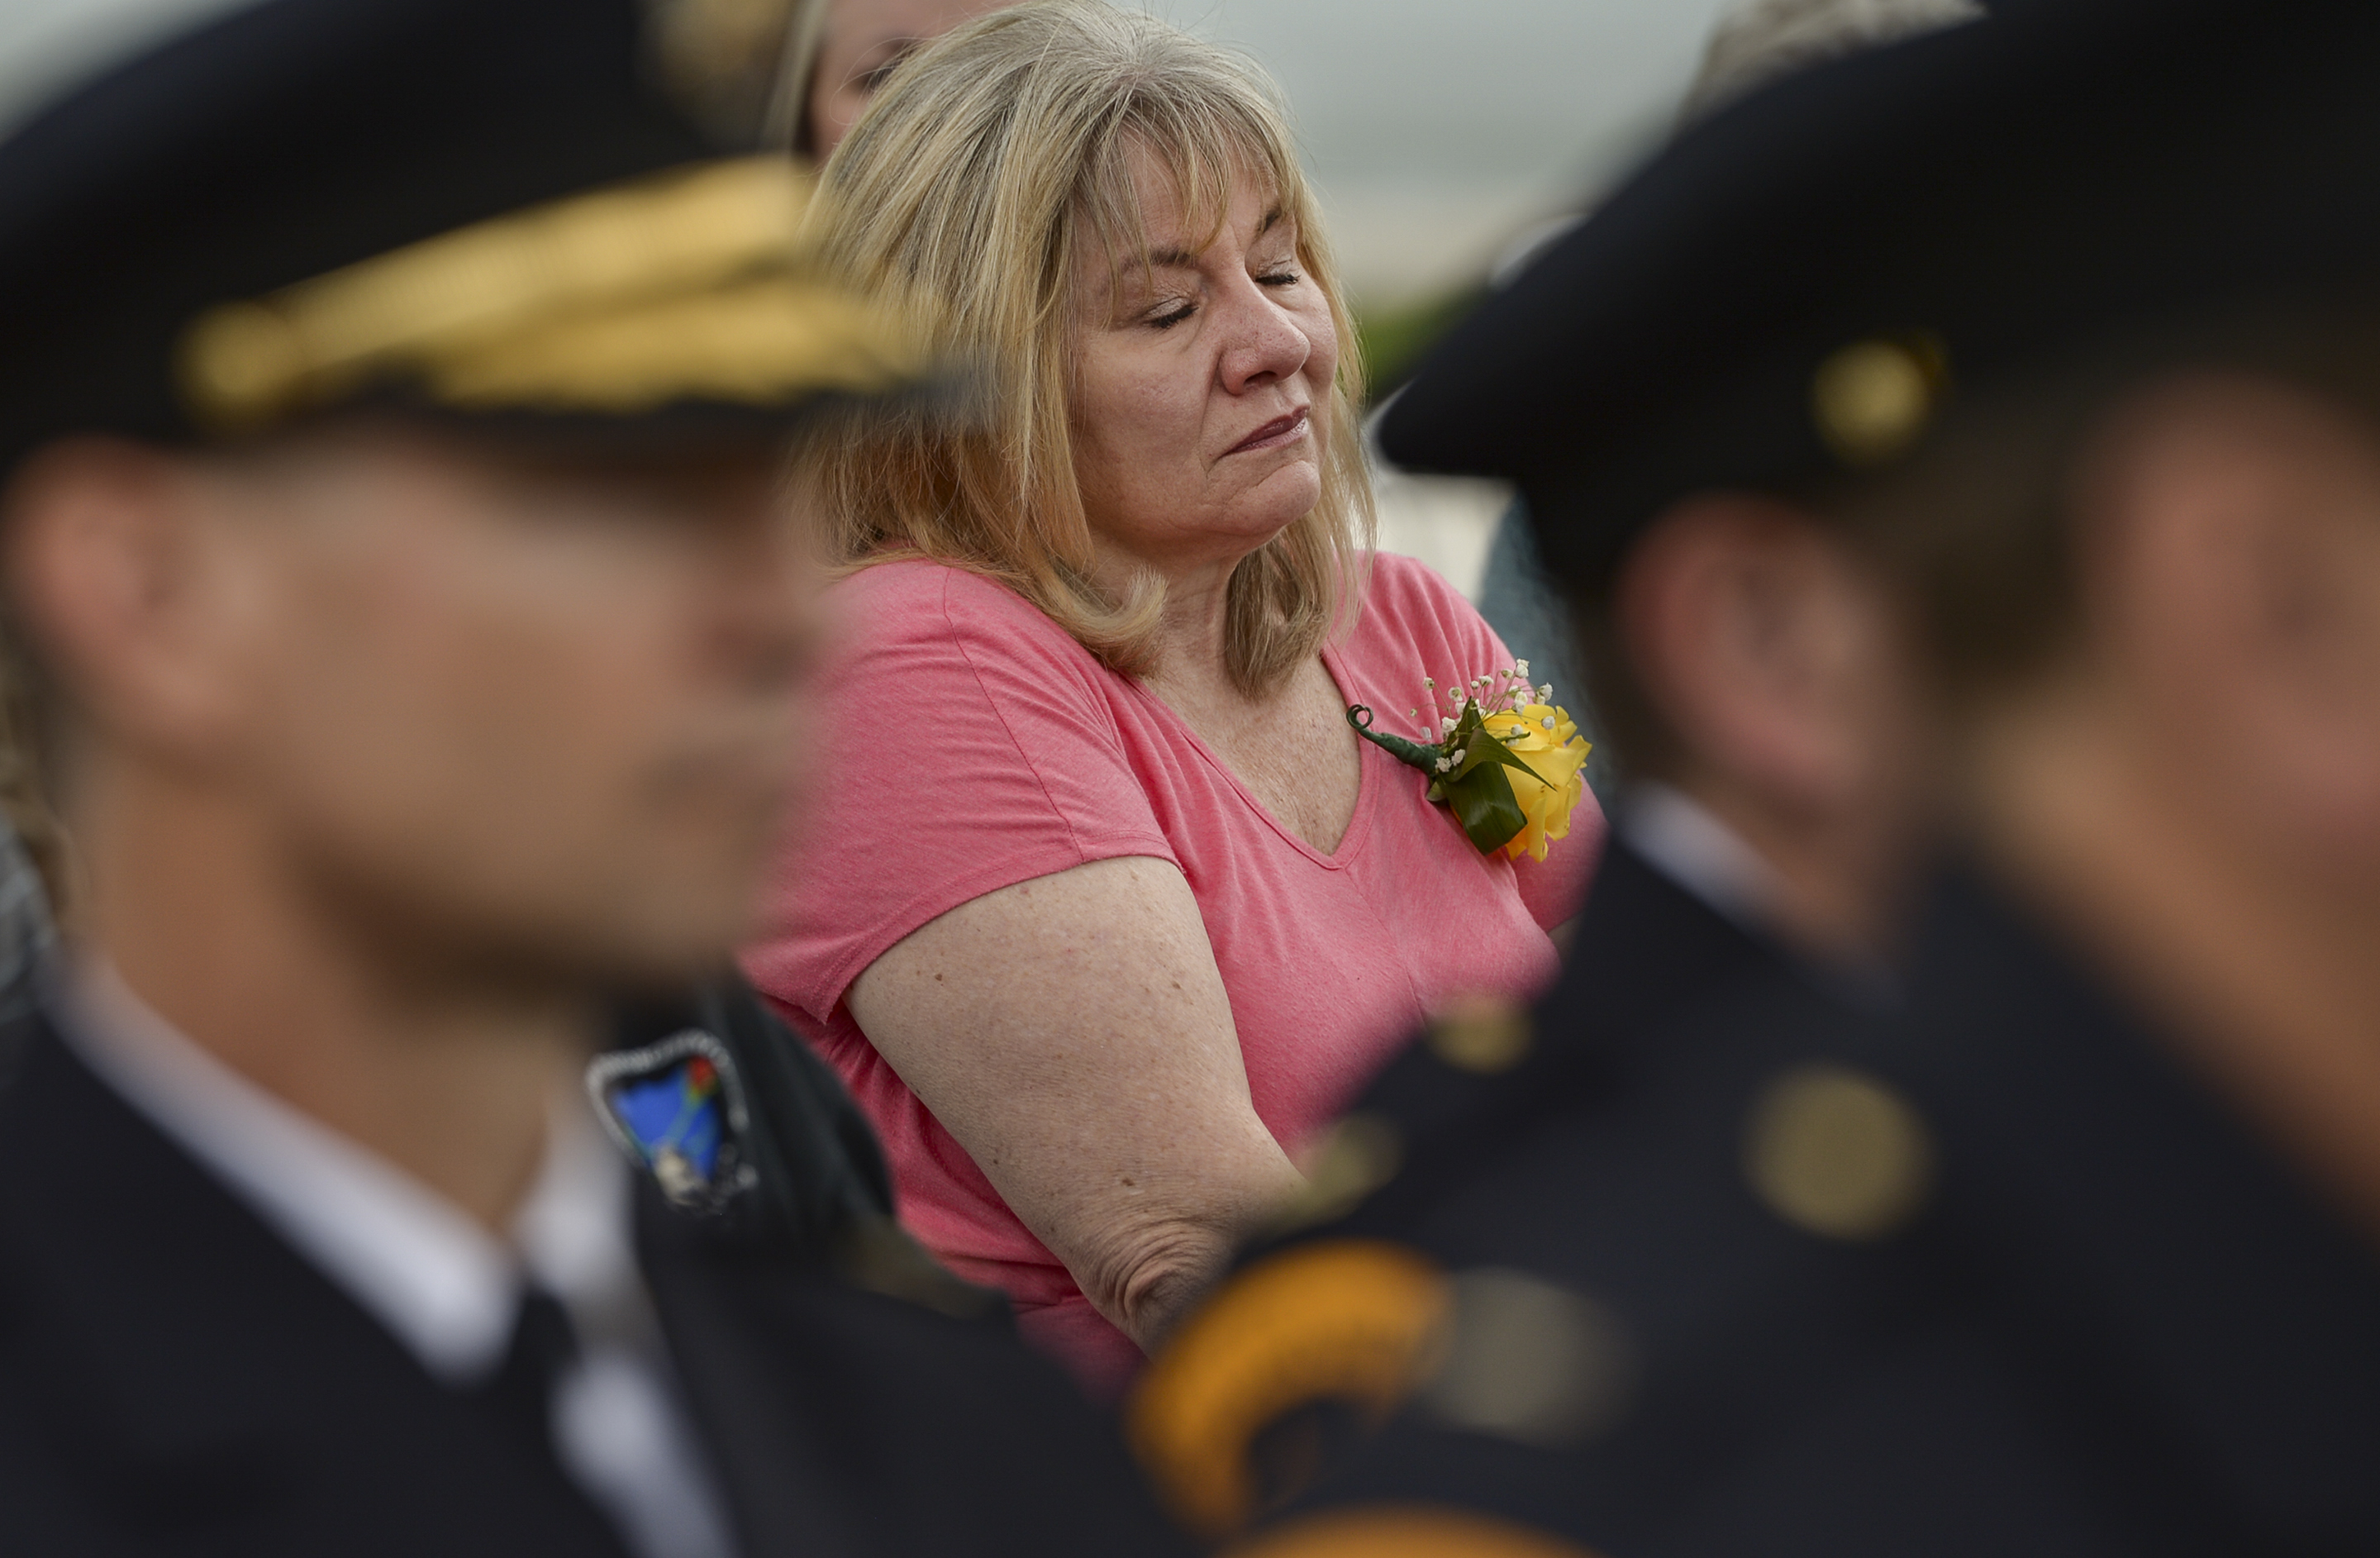 Memorial pays tribute to 25 fallen Salt Lake City policemen who 'served with integrity and character'